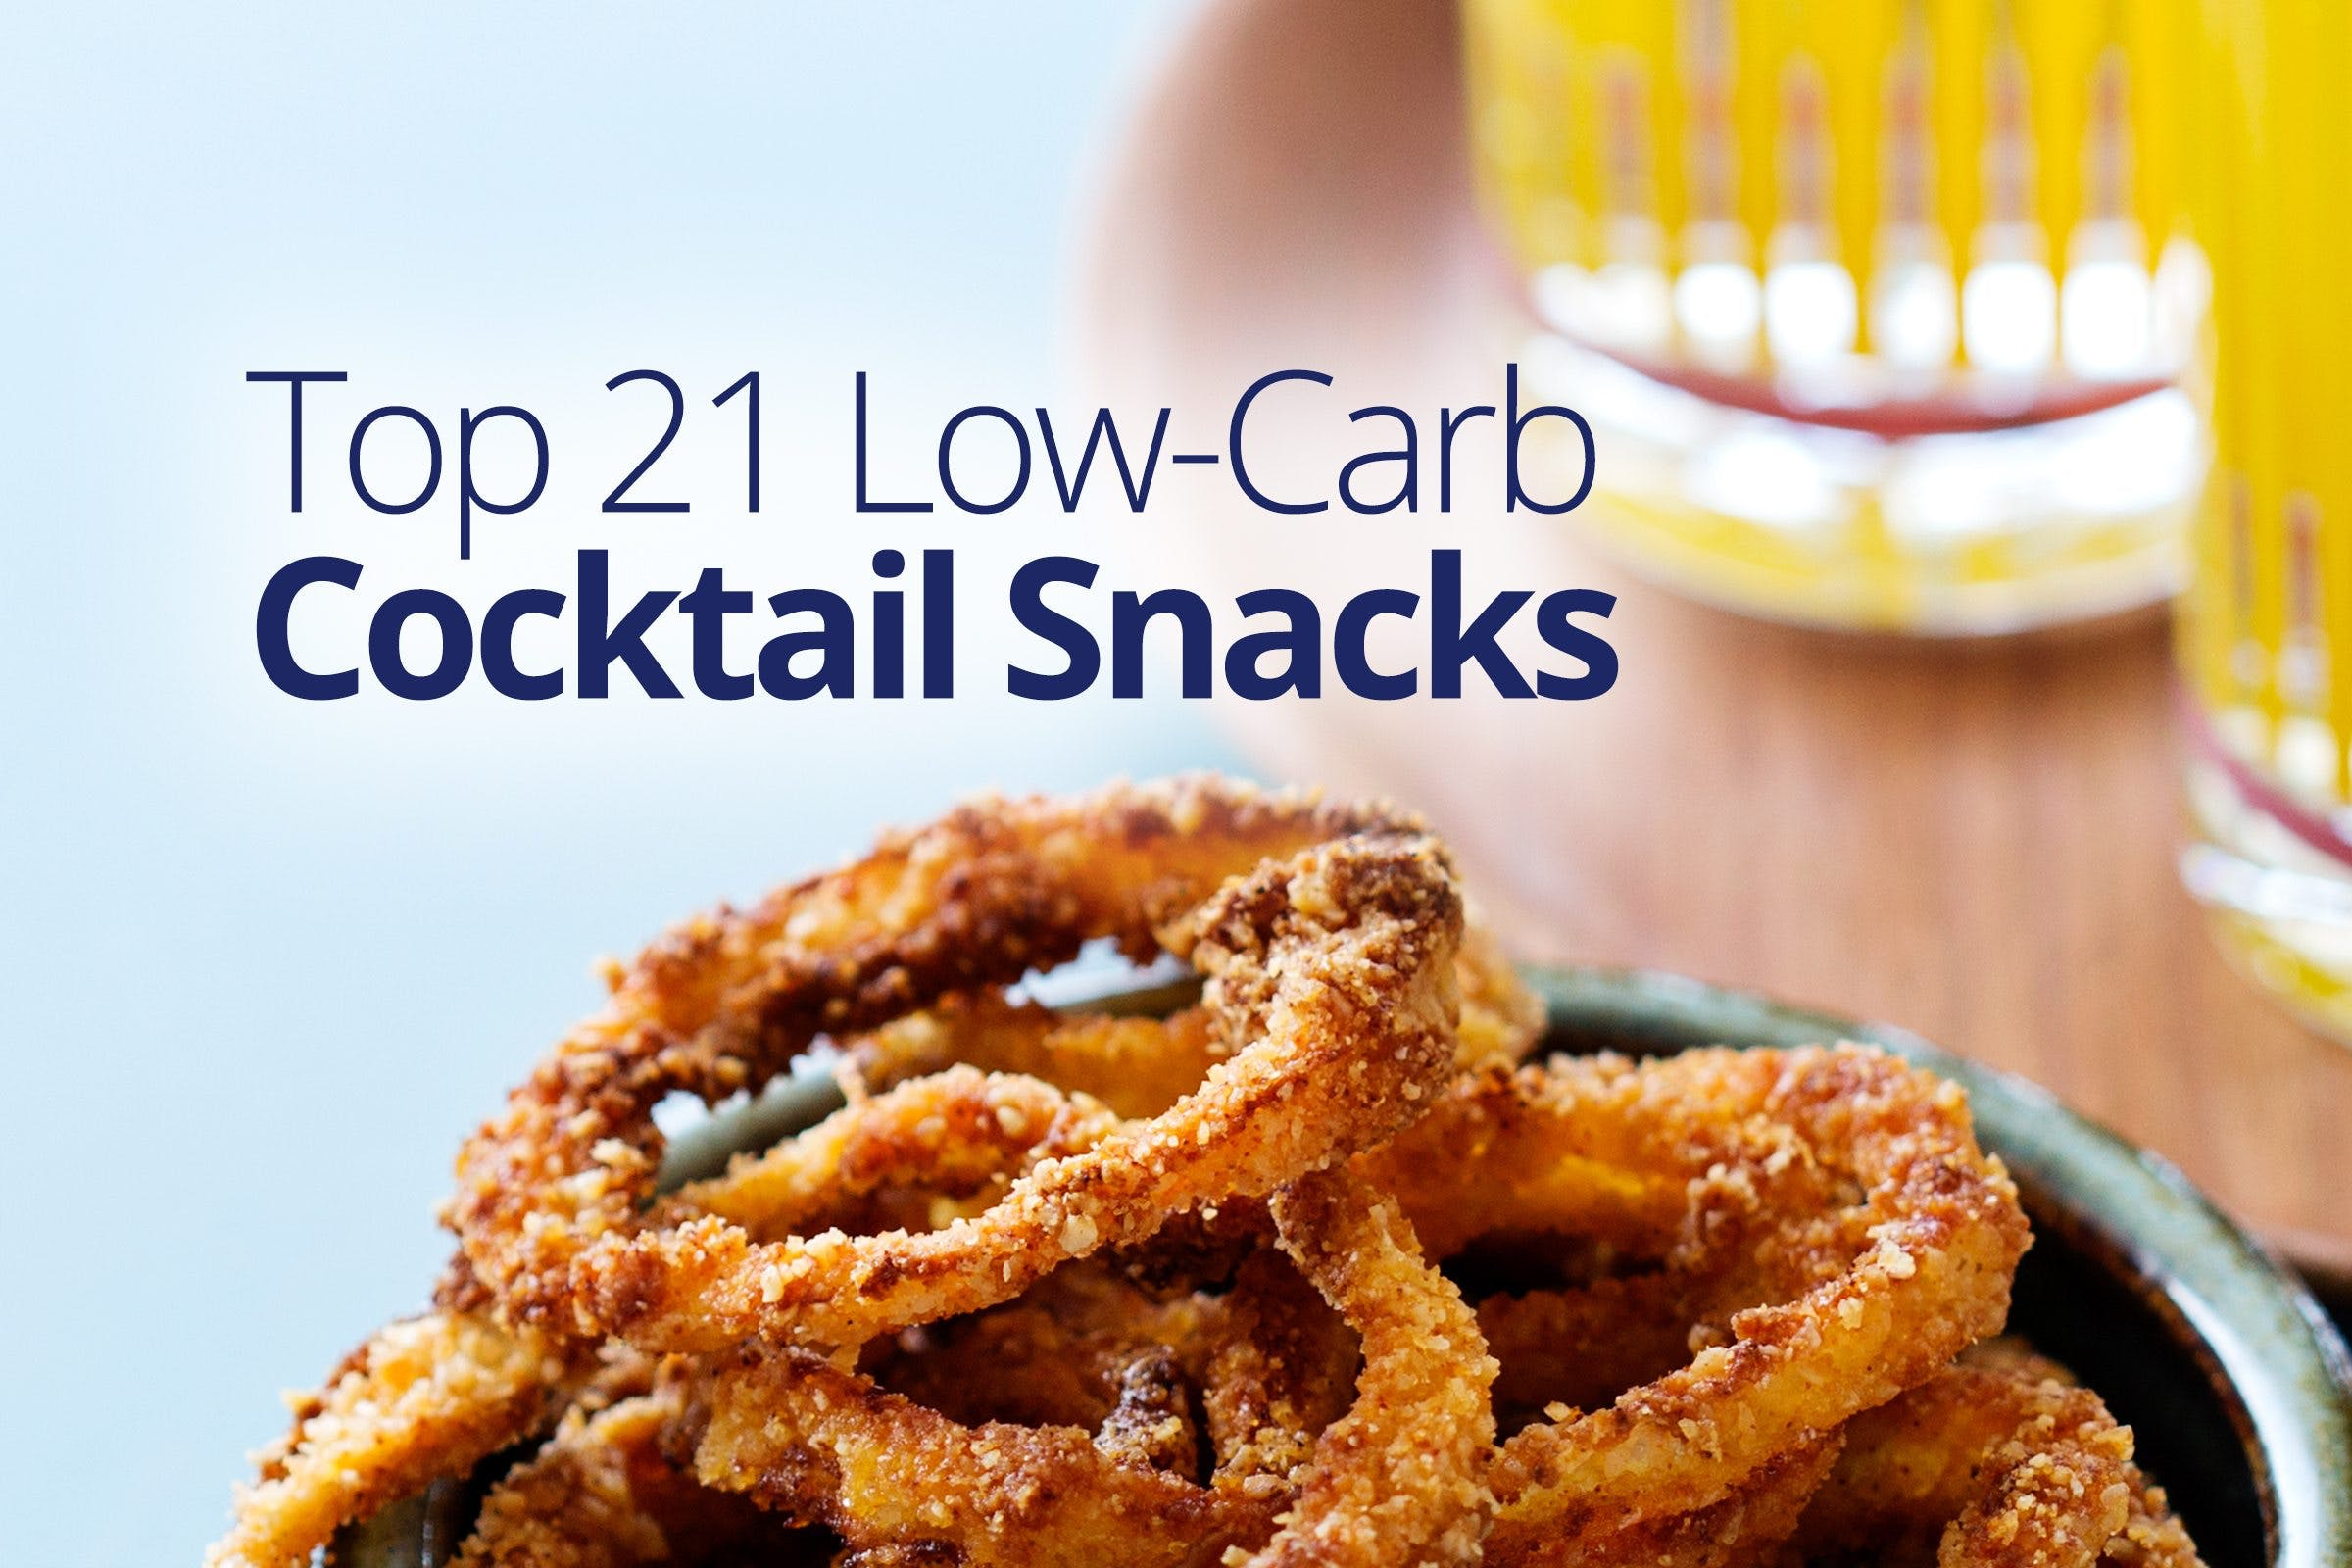 Top 21 low-carb cocktail snacks